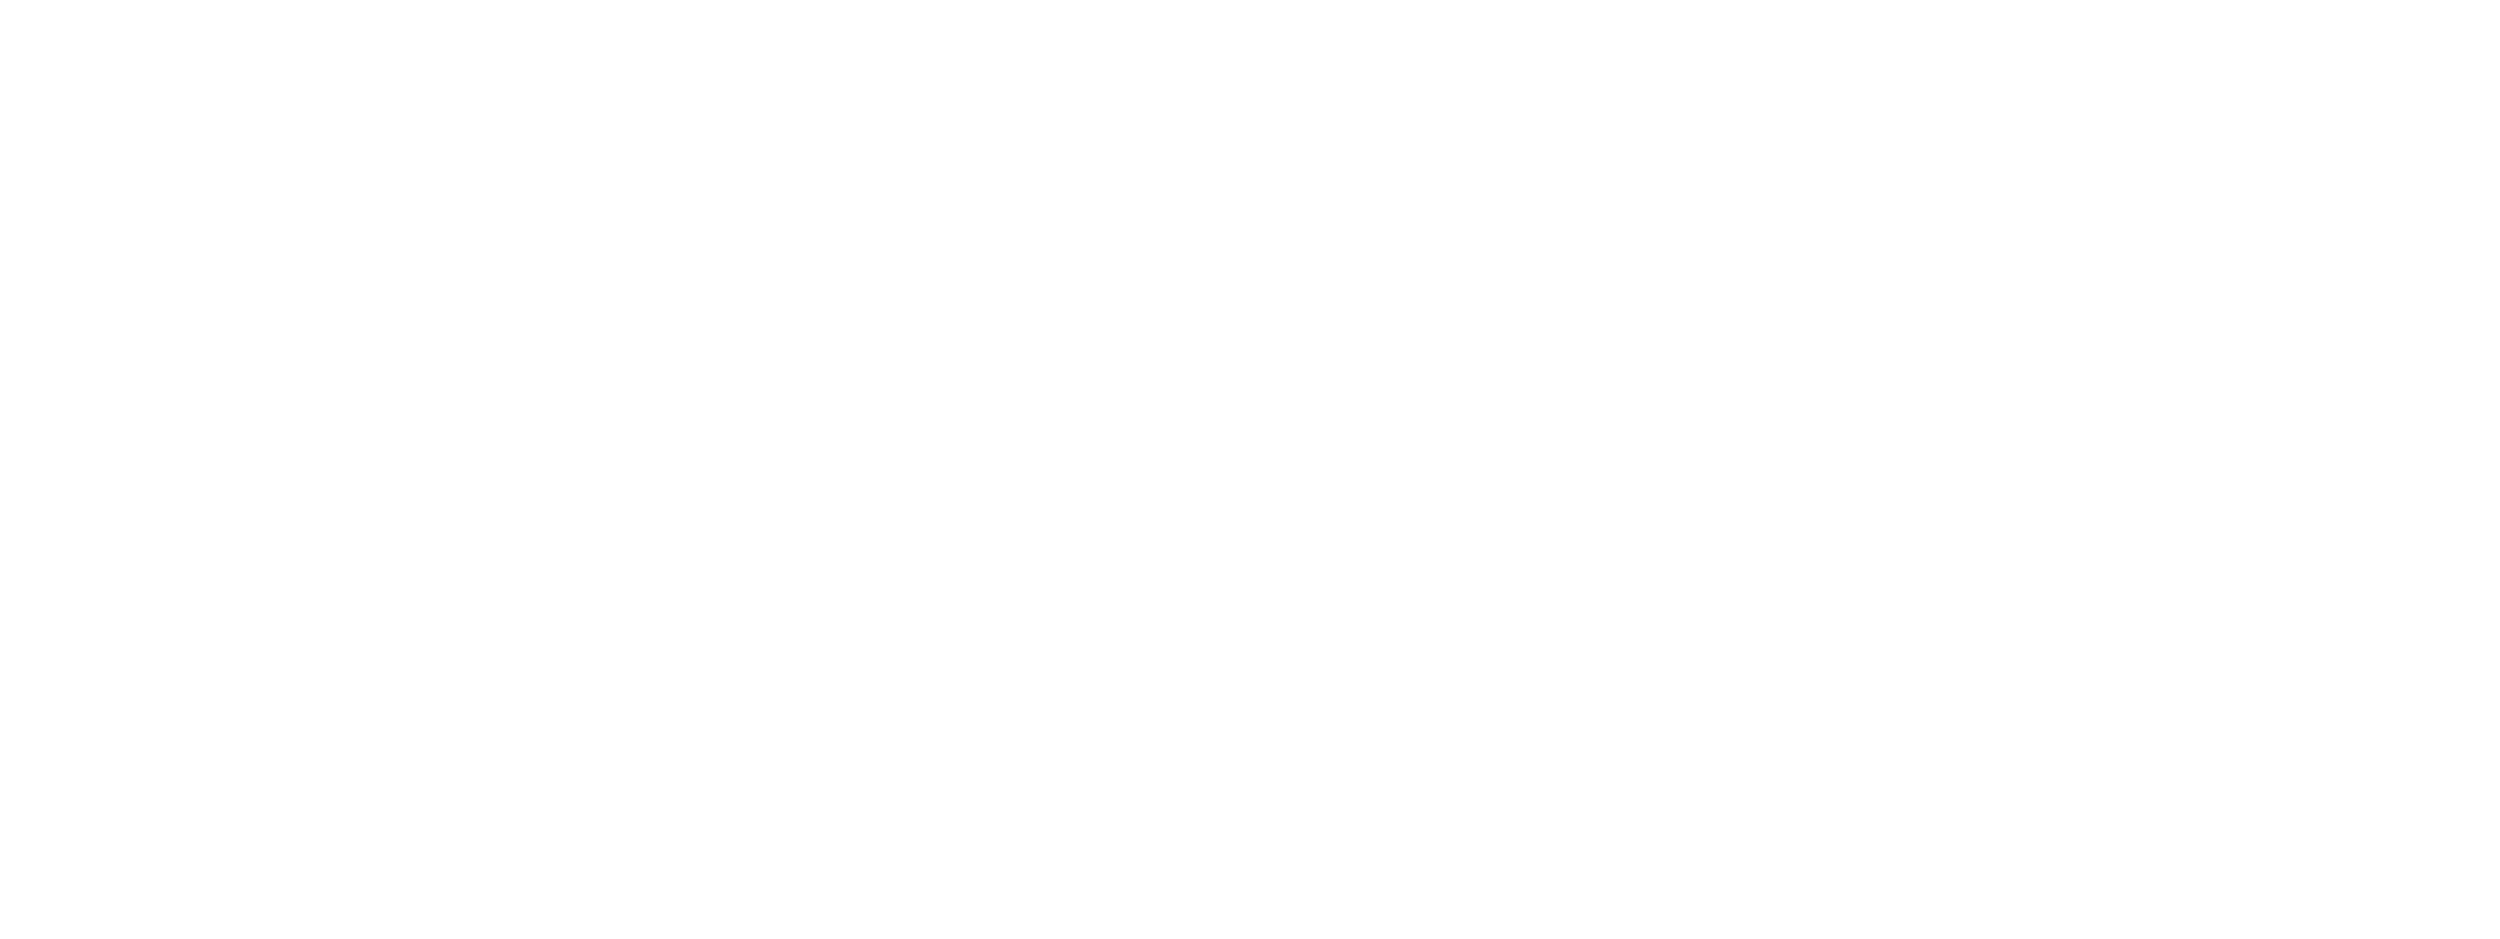 GACM_FINAL_LOGOS_Updated-07.png